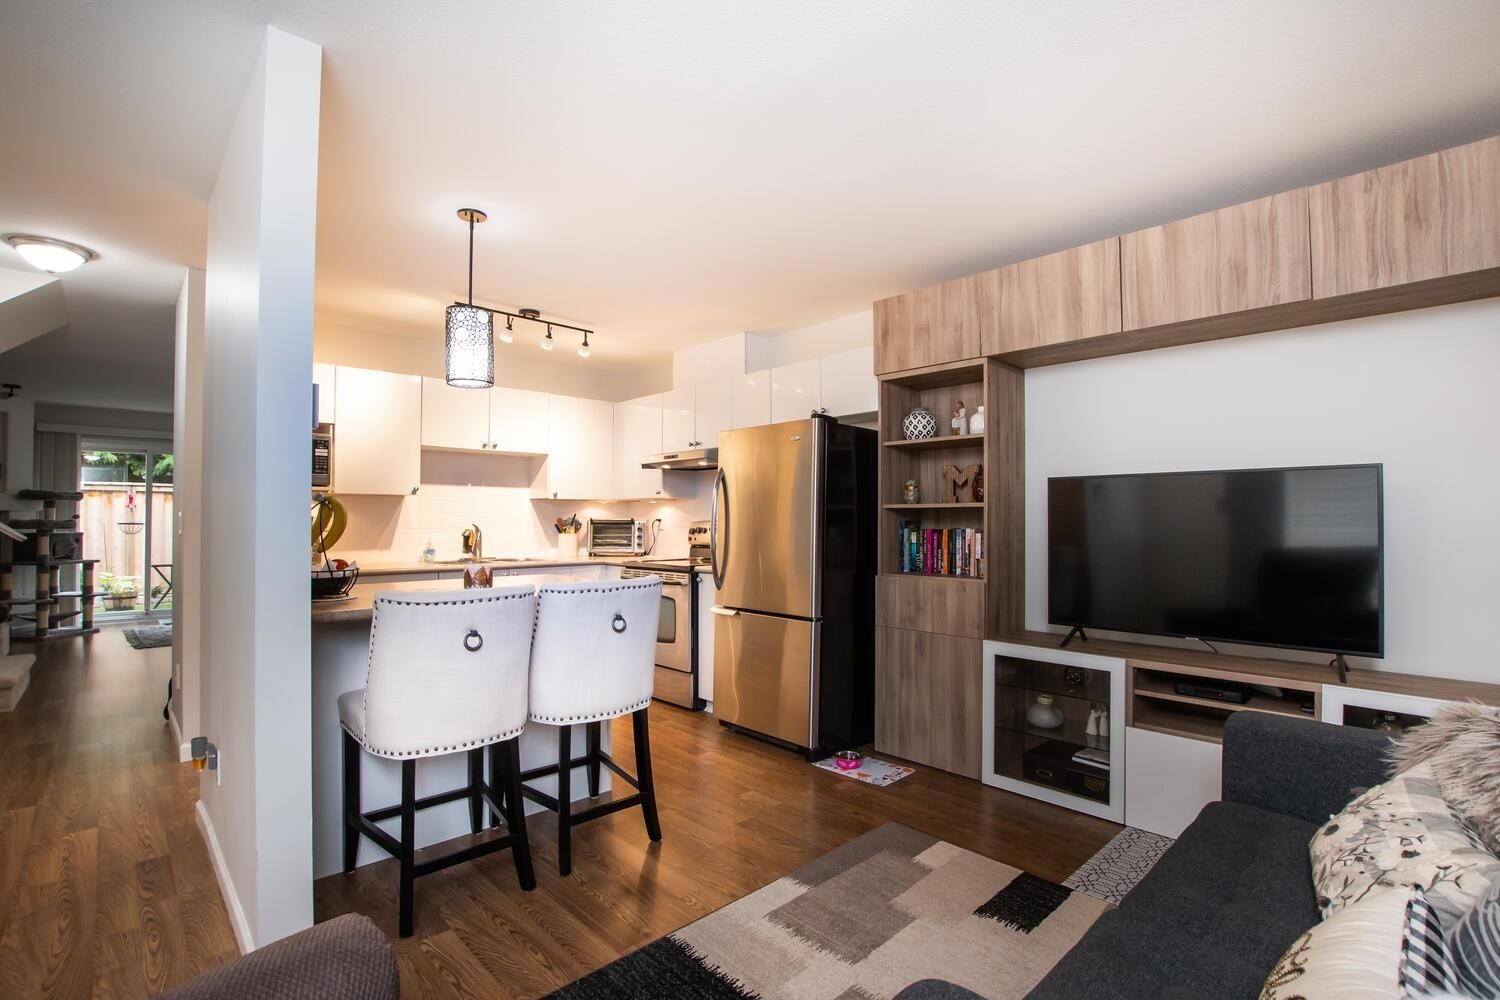 """Main Photo: 18 4748 54A Street in Delta: Delta Manor Townhouse for sale in """"ROSEWOOD COURT"""" (Ladner)  : MLS®# R2622513"""